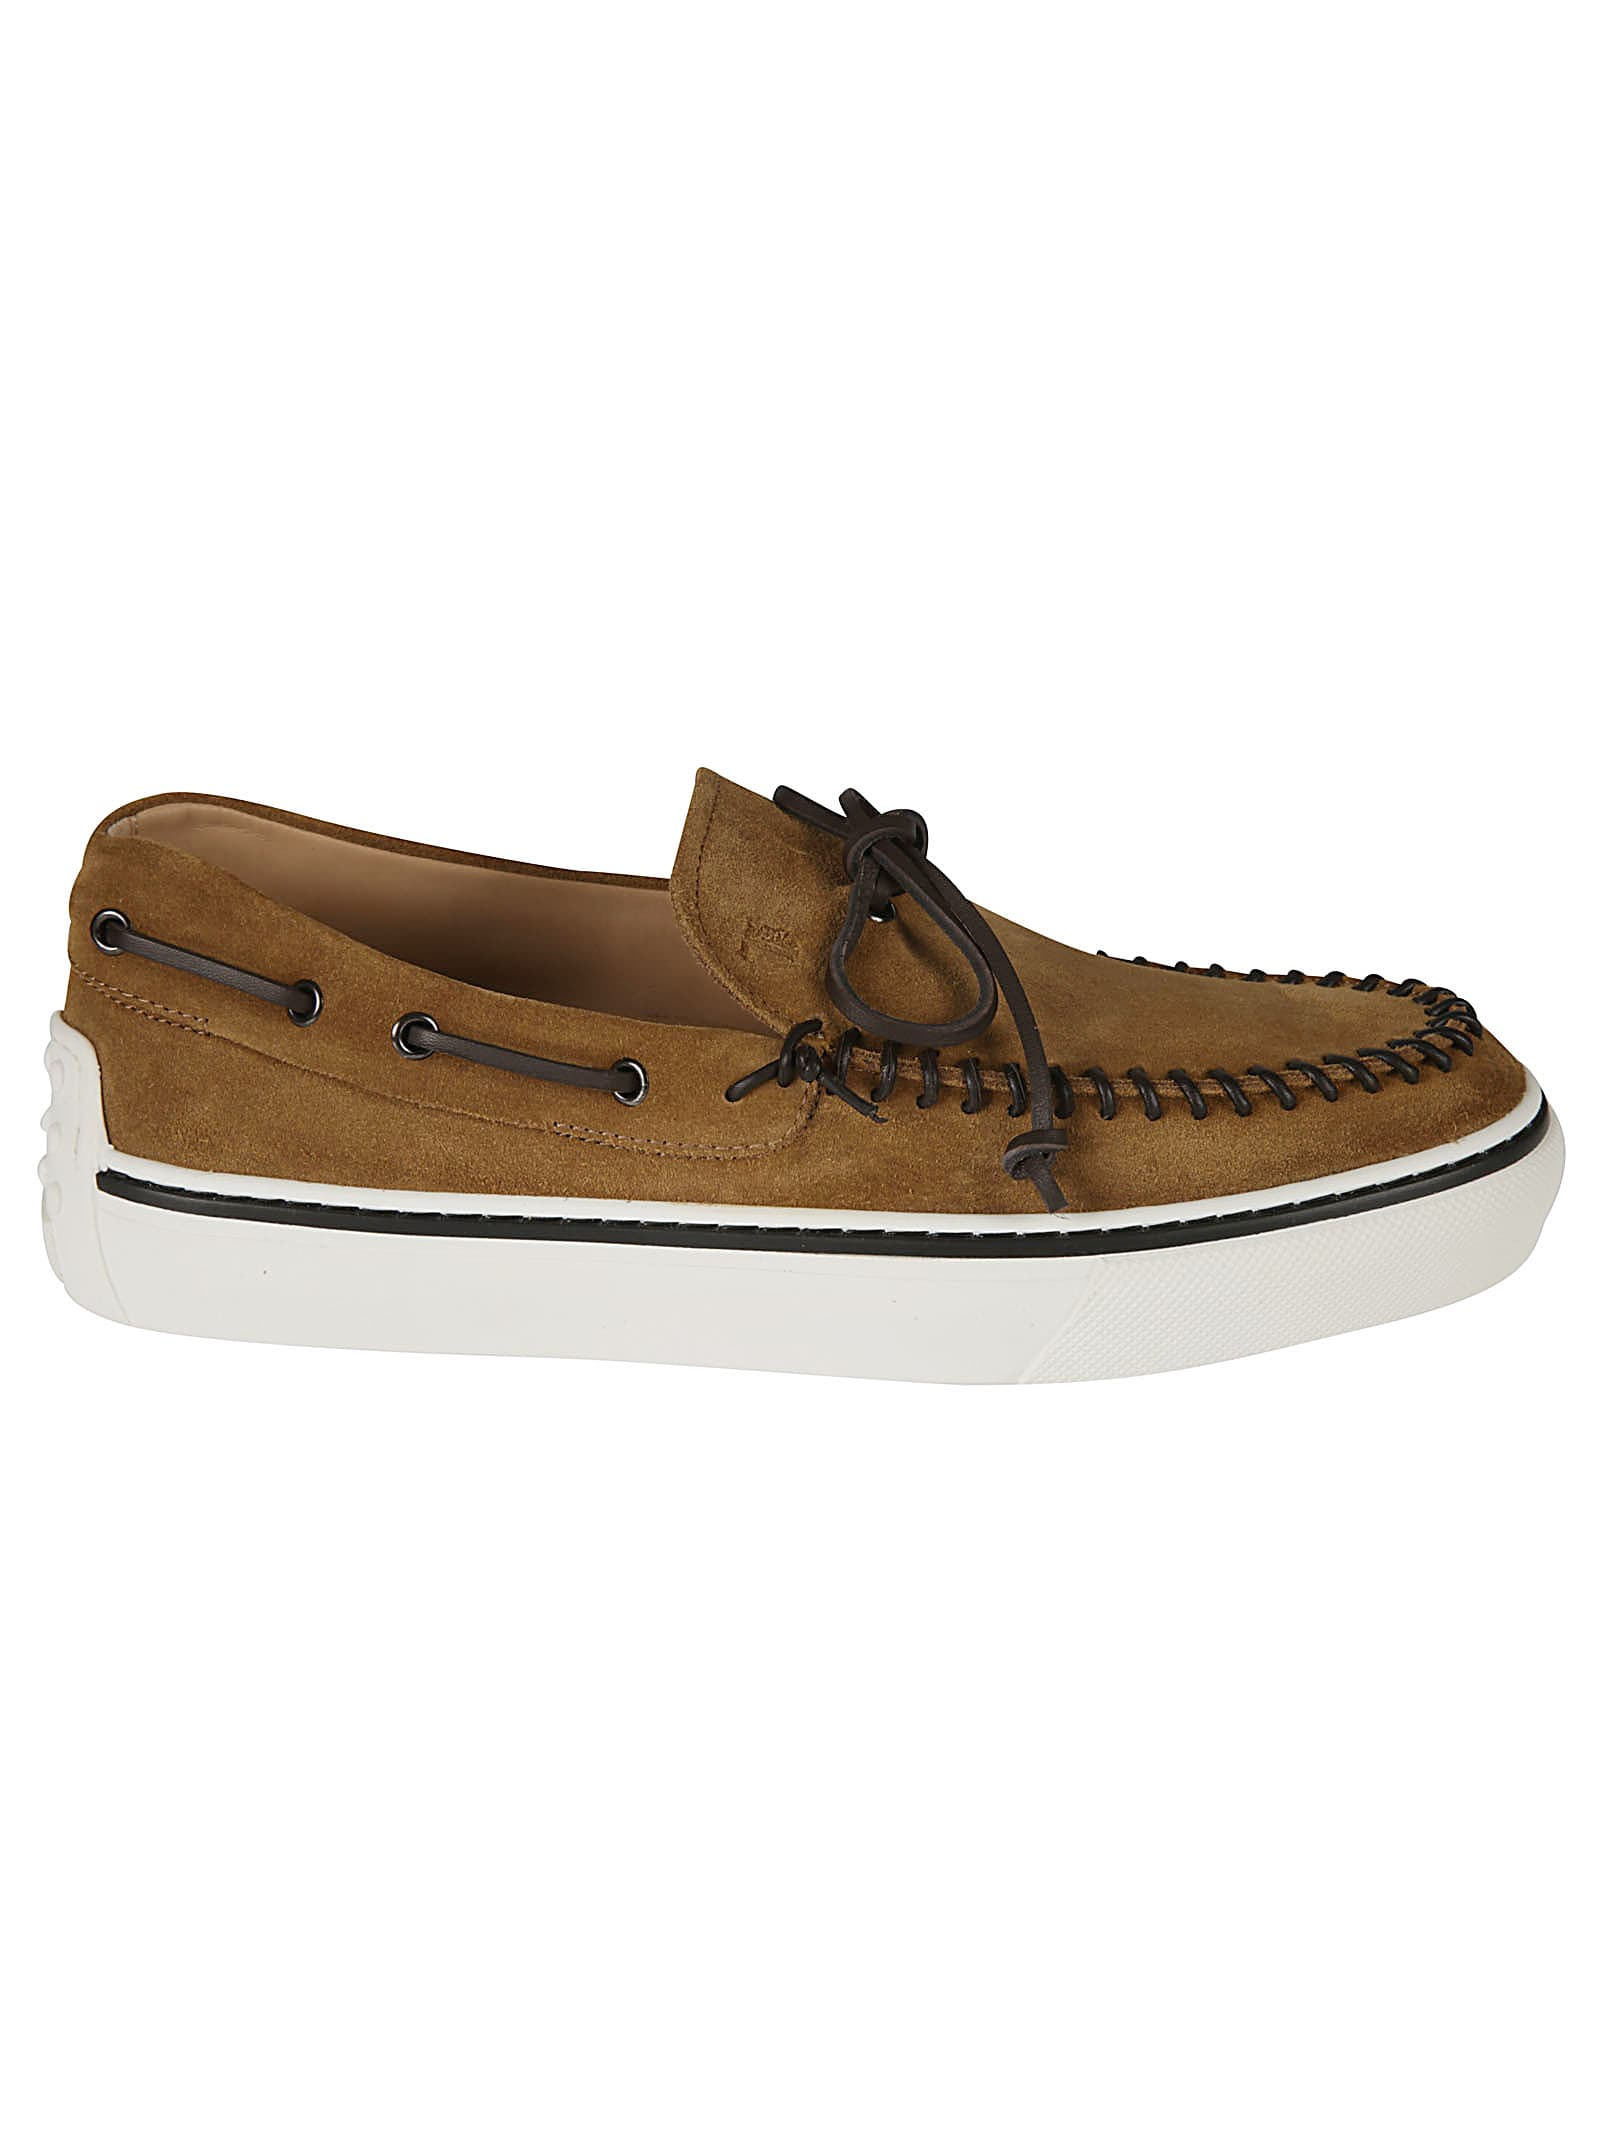 Tods Casual Lace-up Loafers